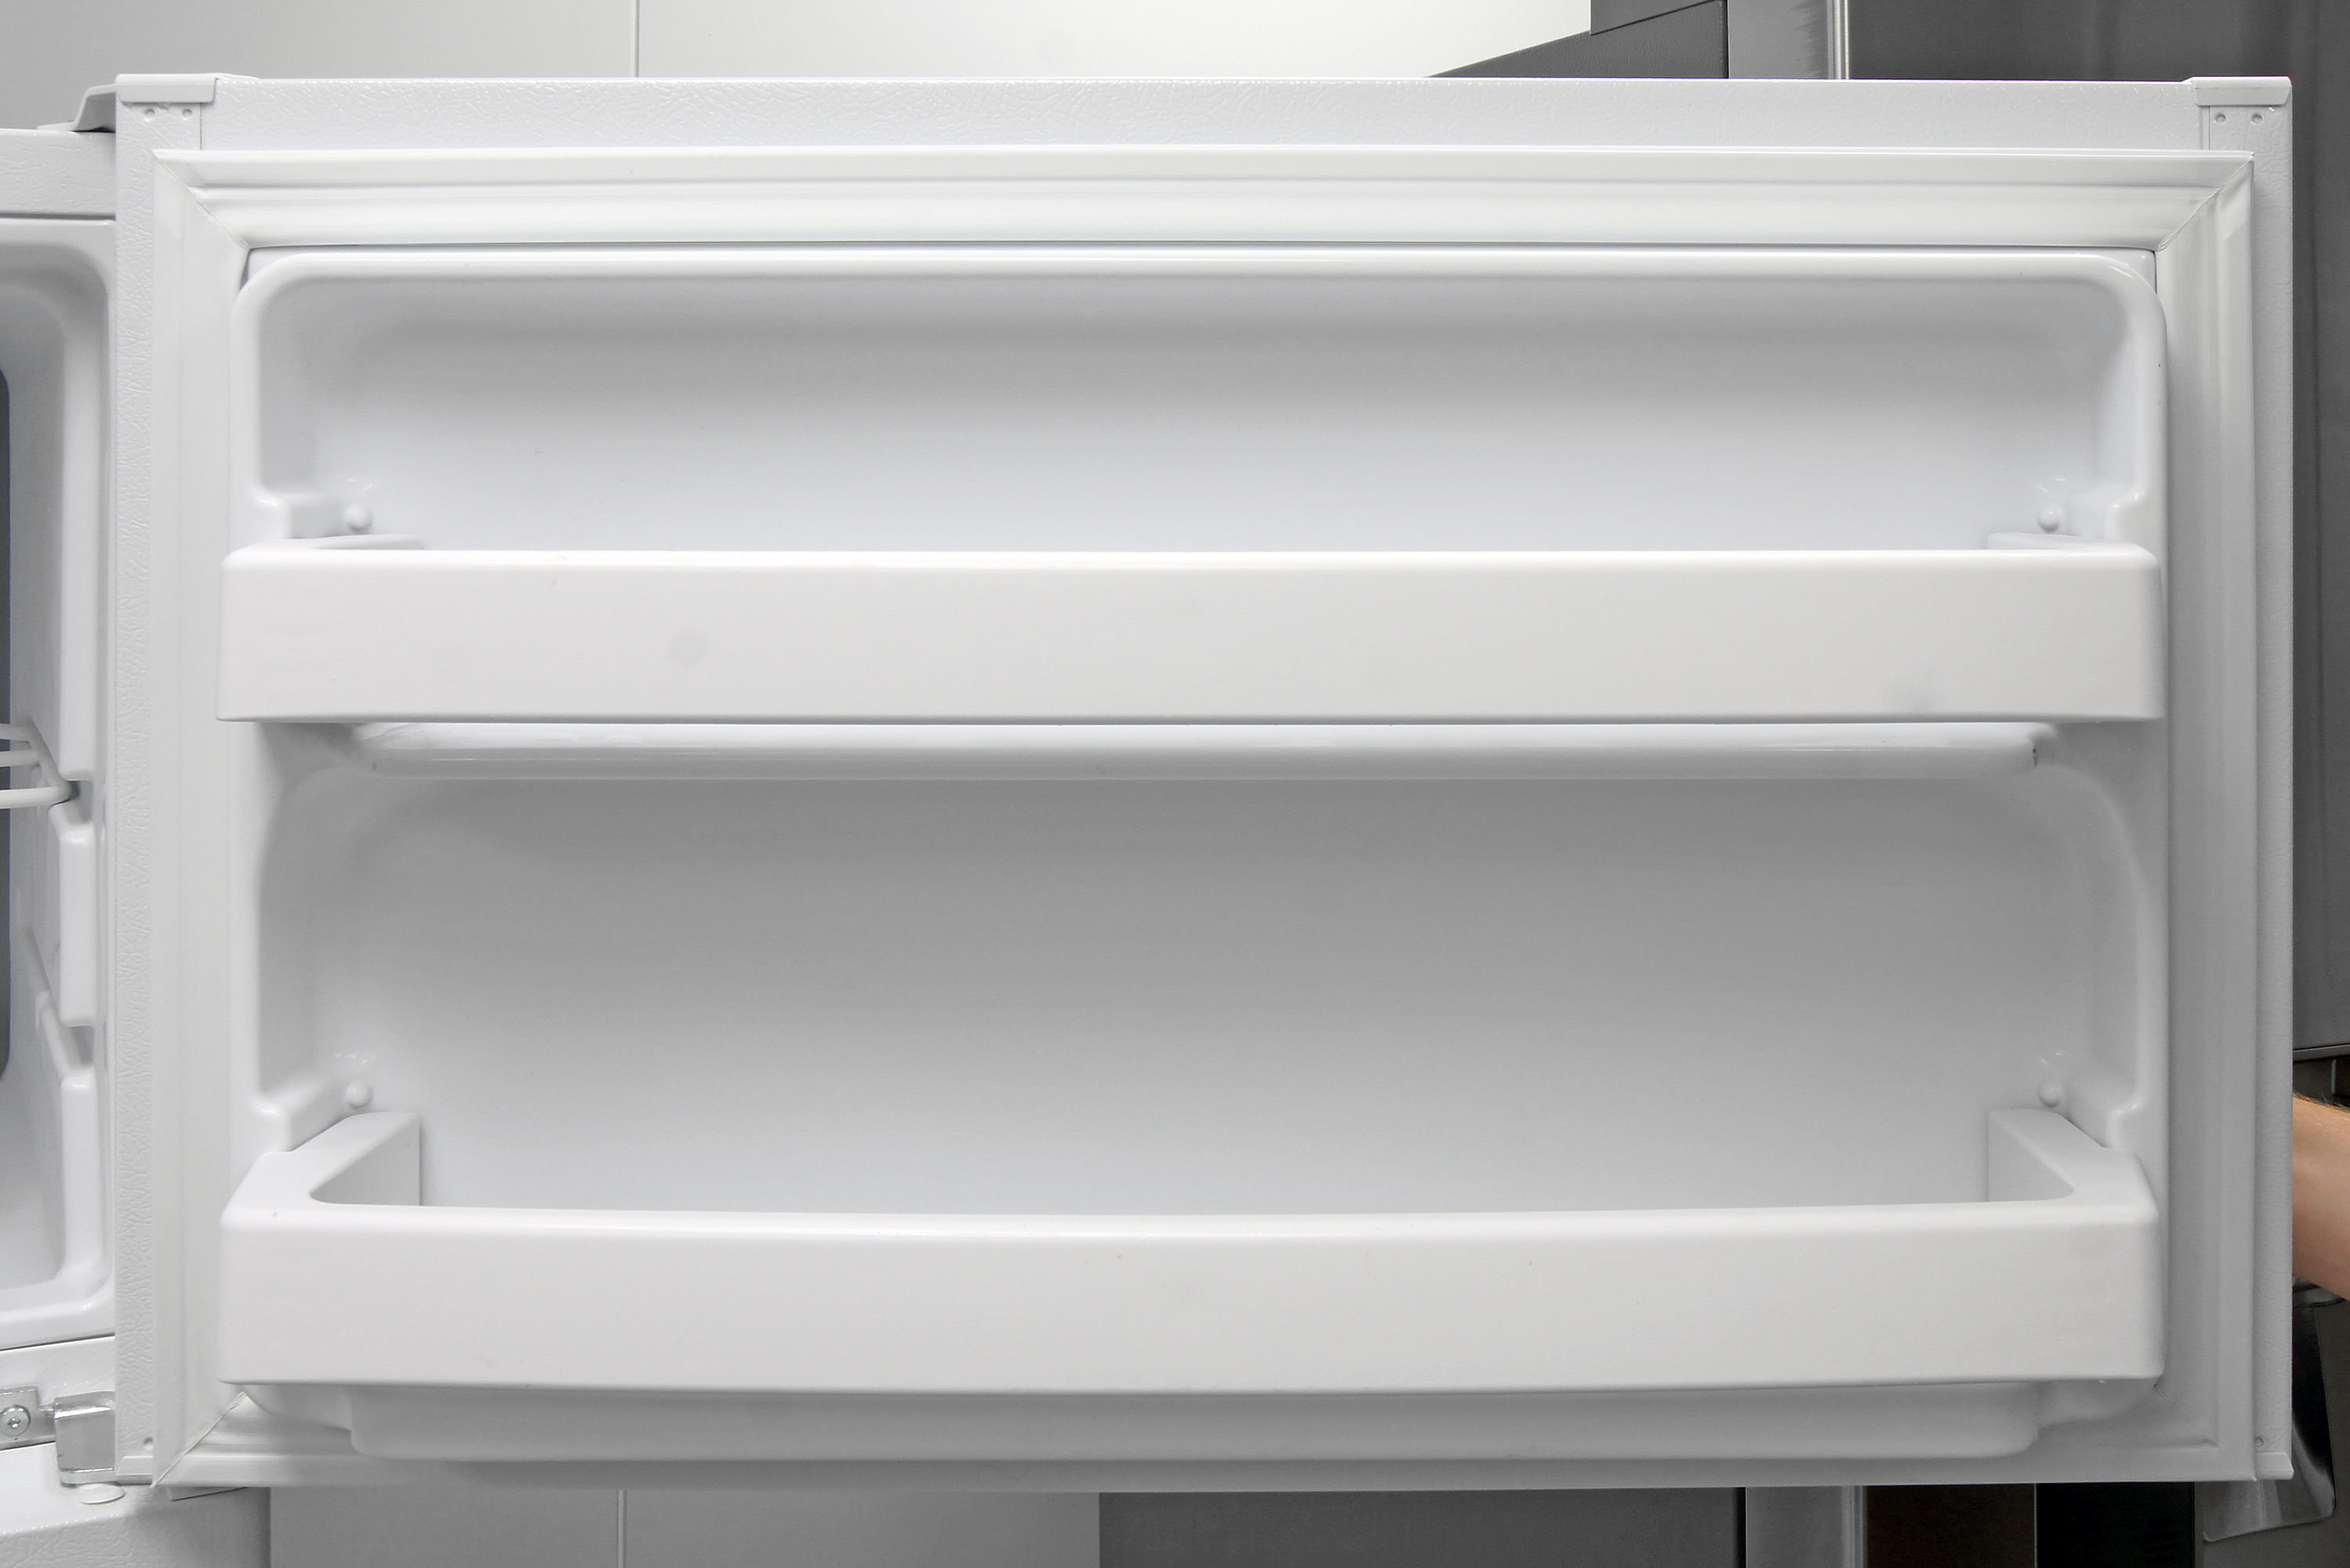 Fixed shelves on the GE GTS16DTHWW's freezer door add supplemental smaller item storage.